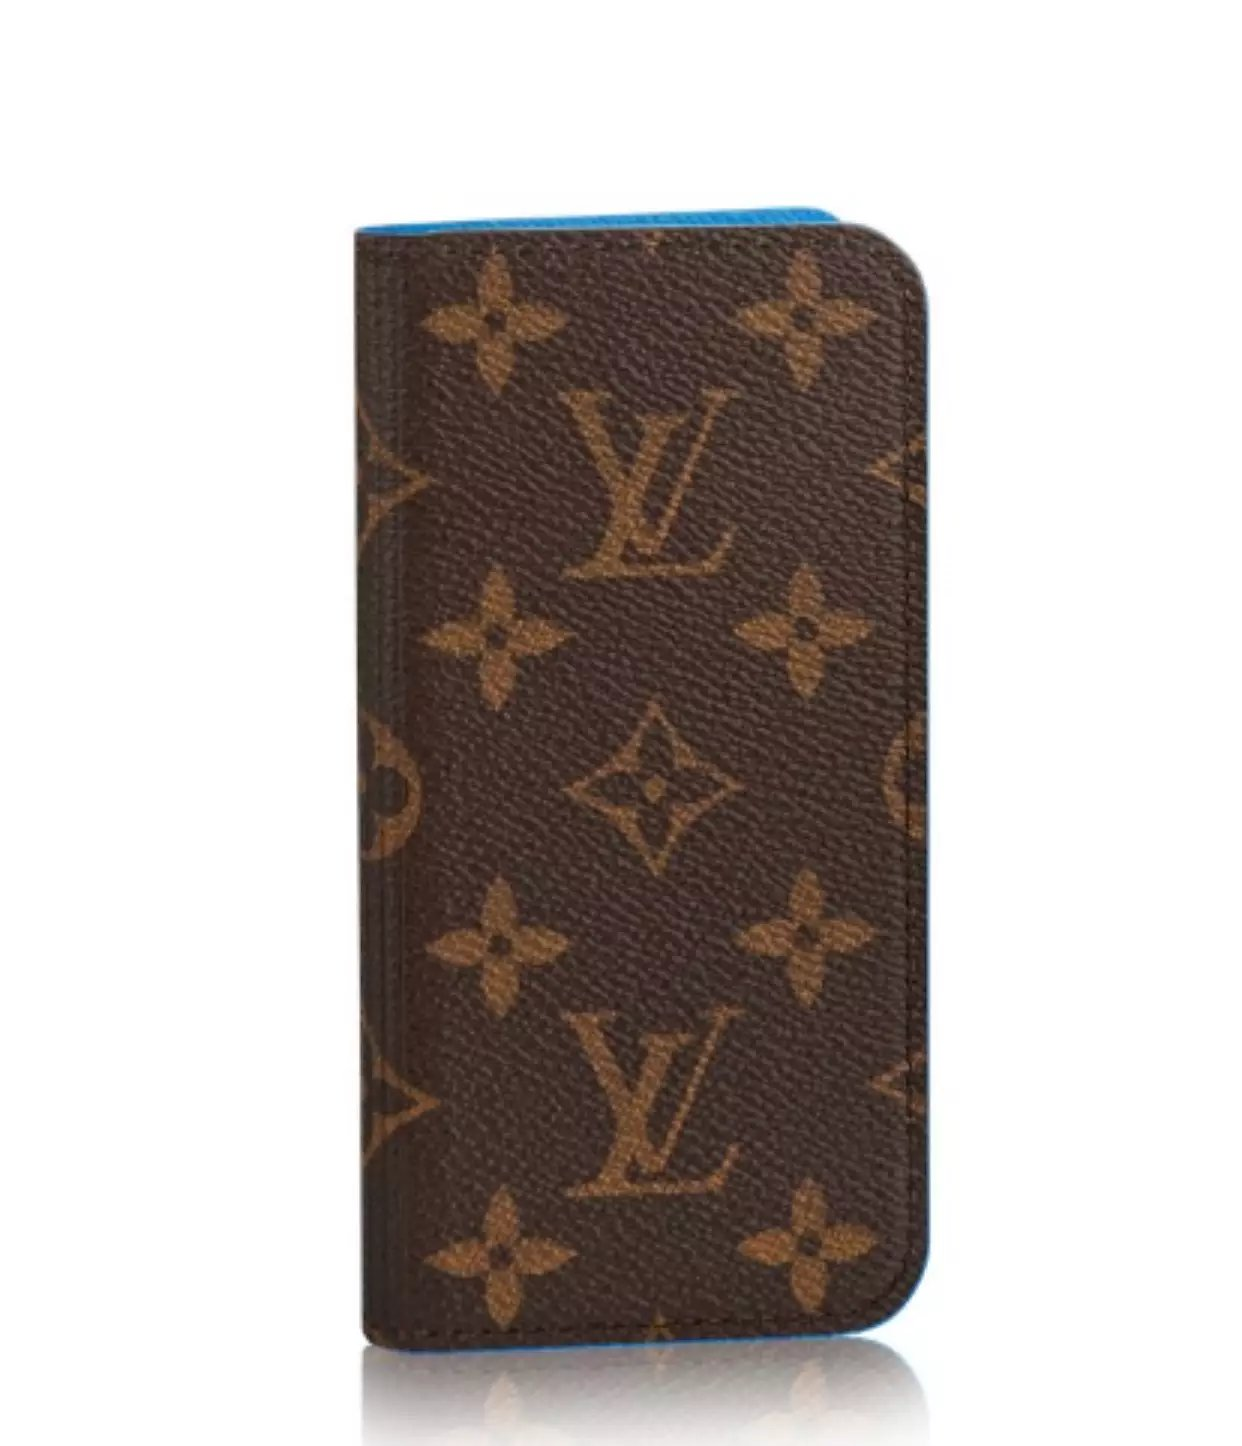 individuelle iphone hülle iphone lederhülle Louis Vuitton iphone7 Plus hülle handy ca7 iphone 7 Plus iphone 7 Plus flip hülle wo gibt es schöne handyhüllen ledertasche iphone 7 Plus schutzhülle iphone 7 Plus leder leder hülle iphone 7 Plus